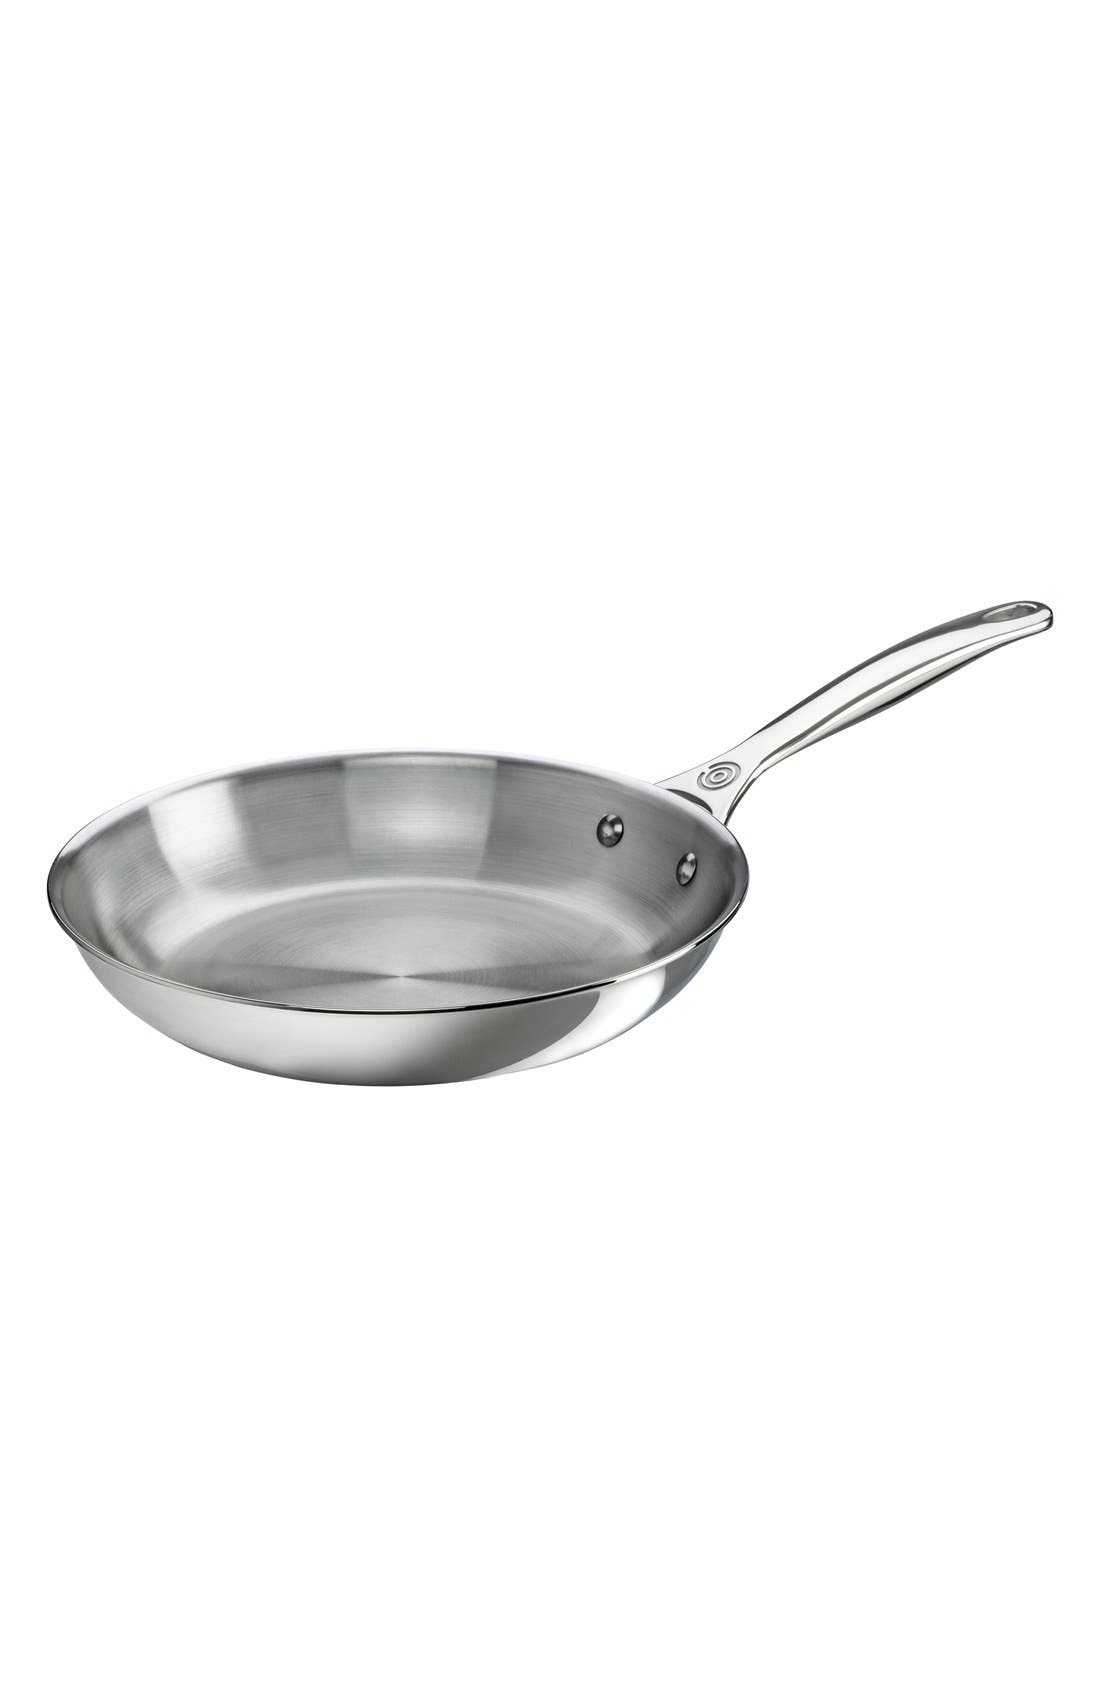 10 Inch Stainless Steel Fry Pan,                             Main thumbnail 1, color,                             Silver